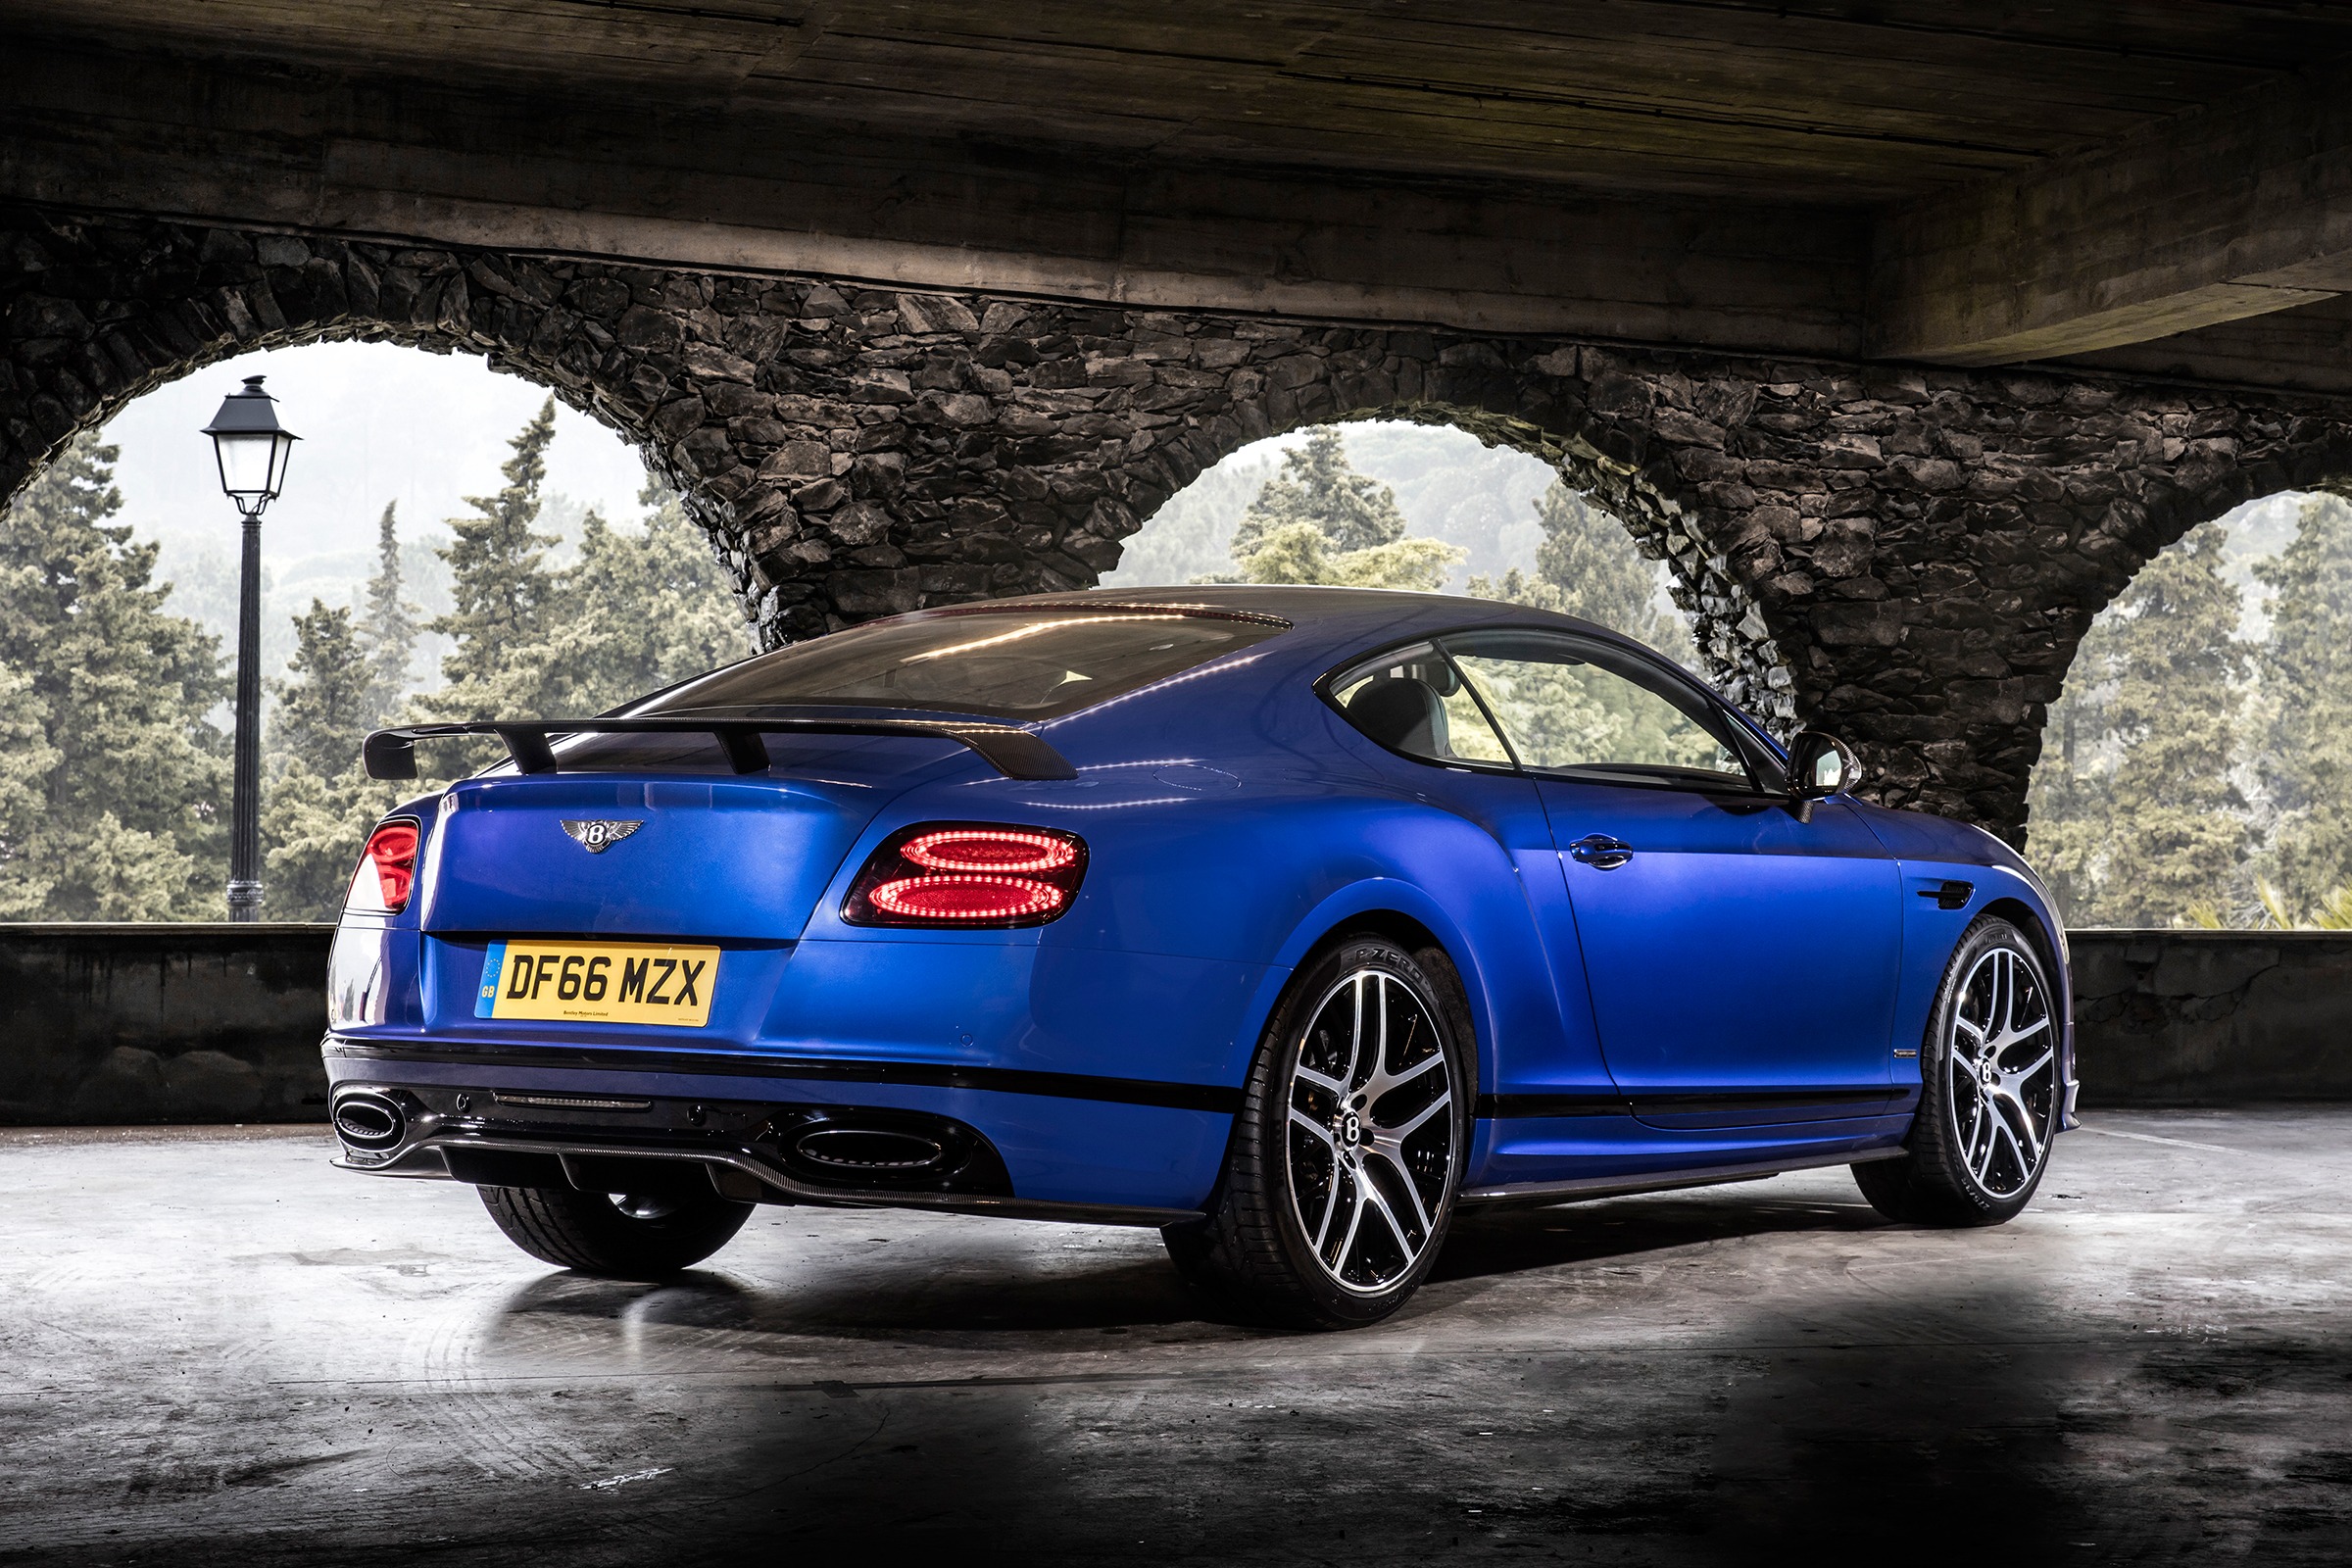 2017 Bentley Continental Supersports Blue Exterior Rear And Side (Photo 15 of 31)